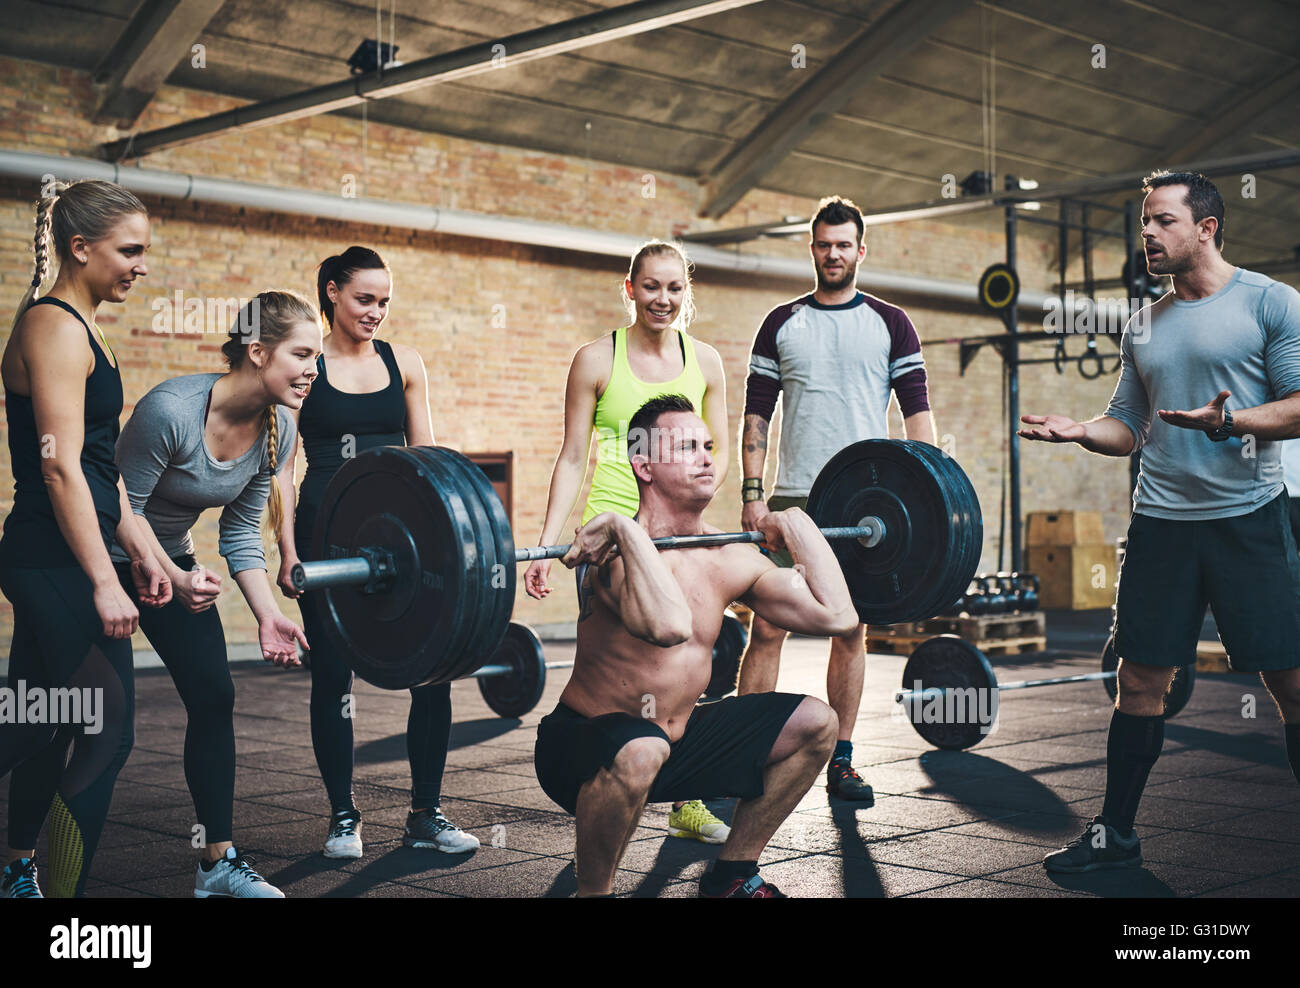 Fit man lifting barbells looking focused, working out in a gym with other people cheering him on in support - Stock Image